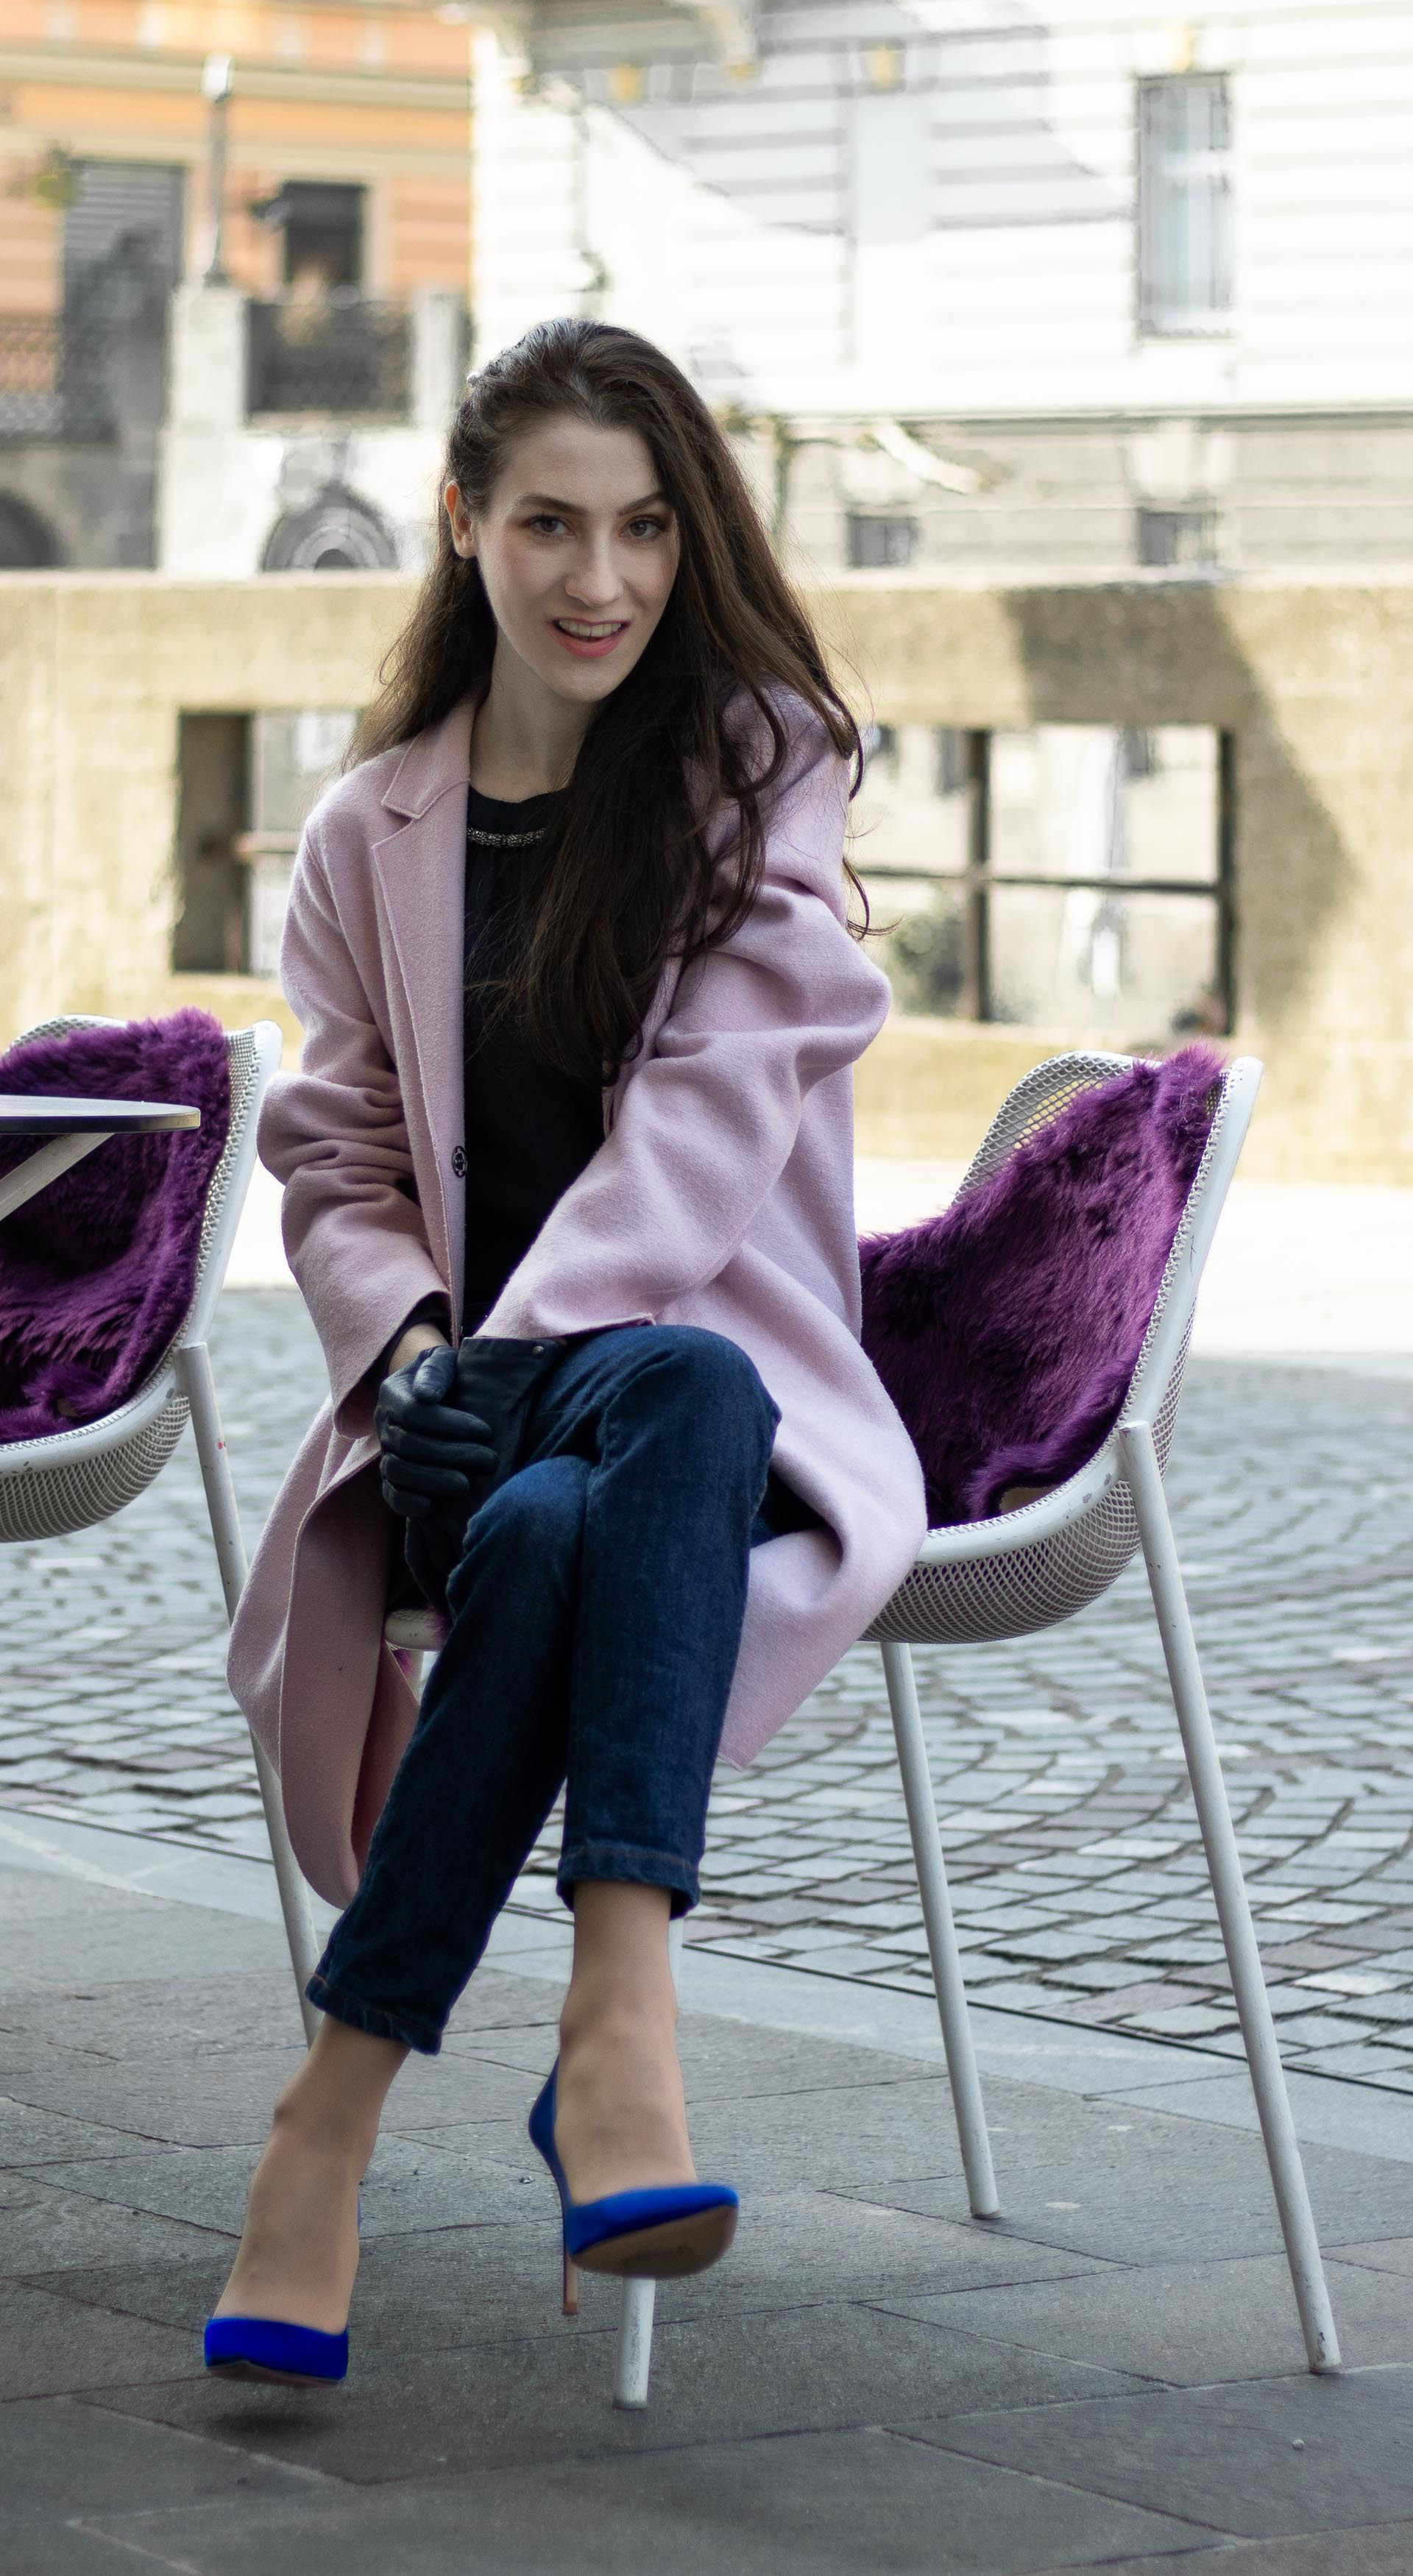 Must follow Fashion Blogger Veronika Lipar of Brunette from Wall Street wearing oversize pink Harris Wharf London coat A.P.C. Paris dark blue denim jeans Gianvito Rossi blue court shoes black top handle bag Forzieri blue leather gloves pearl hairpin sitting